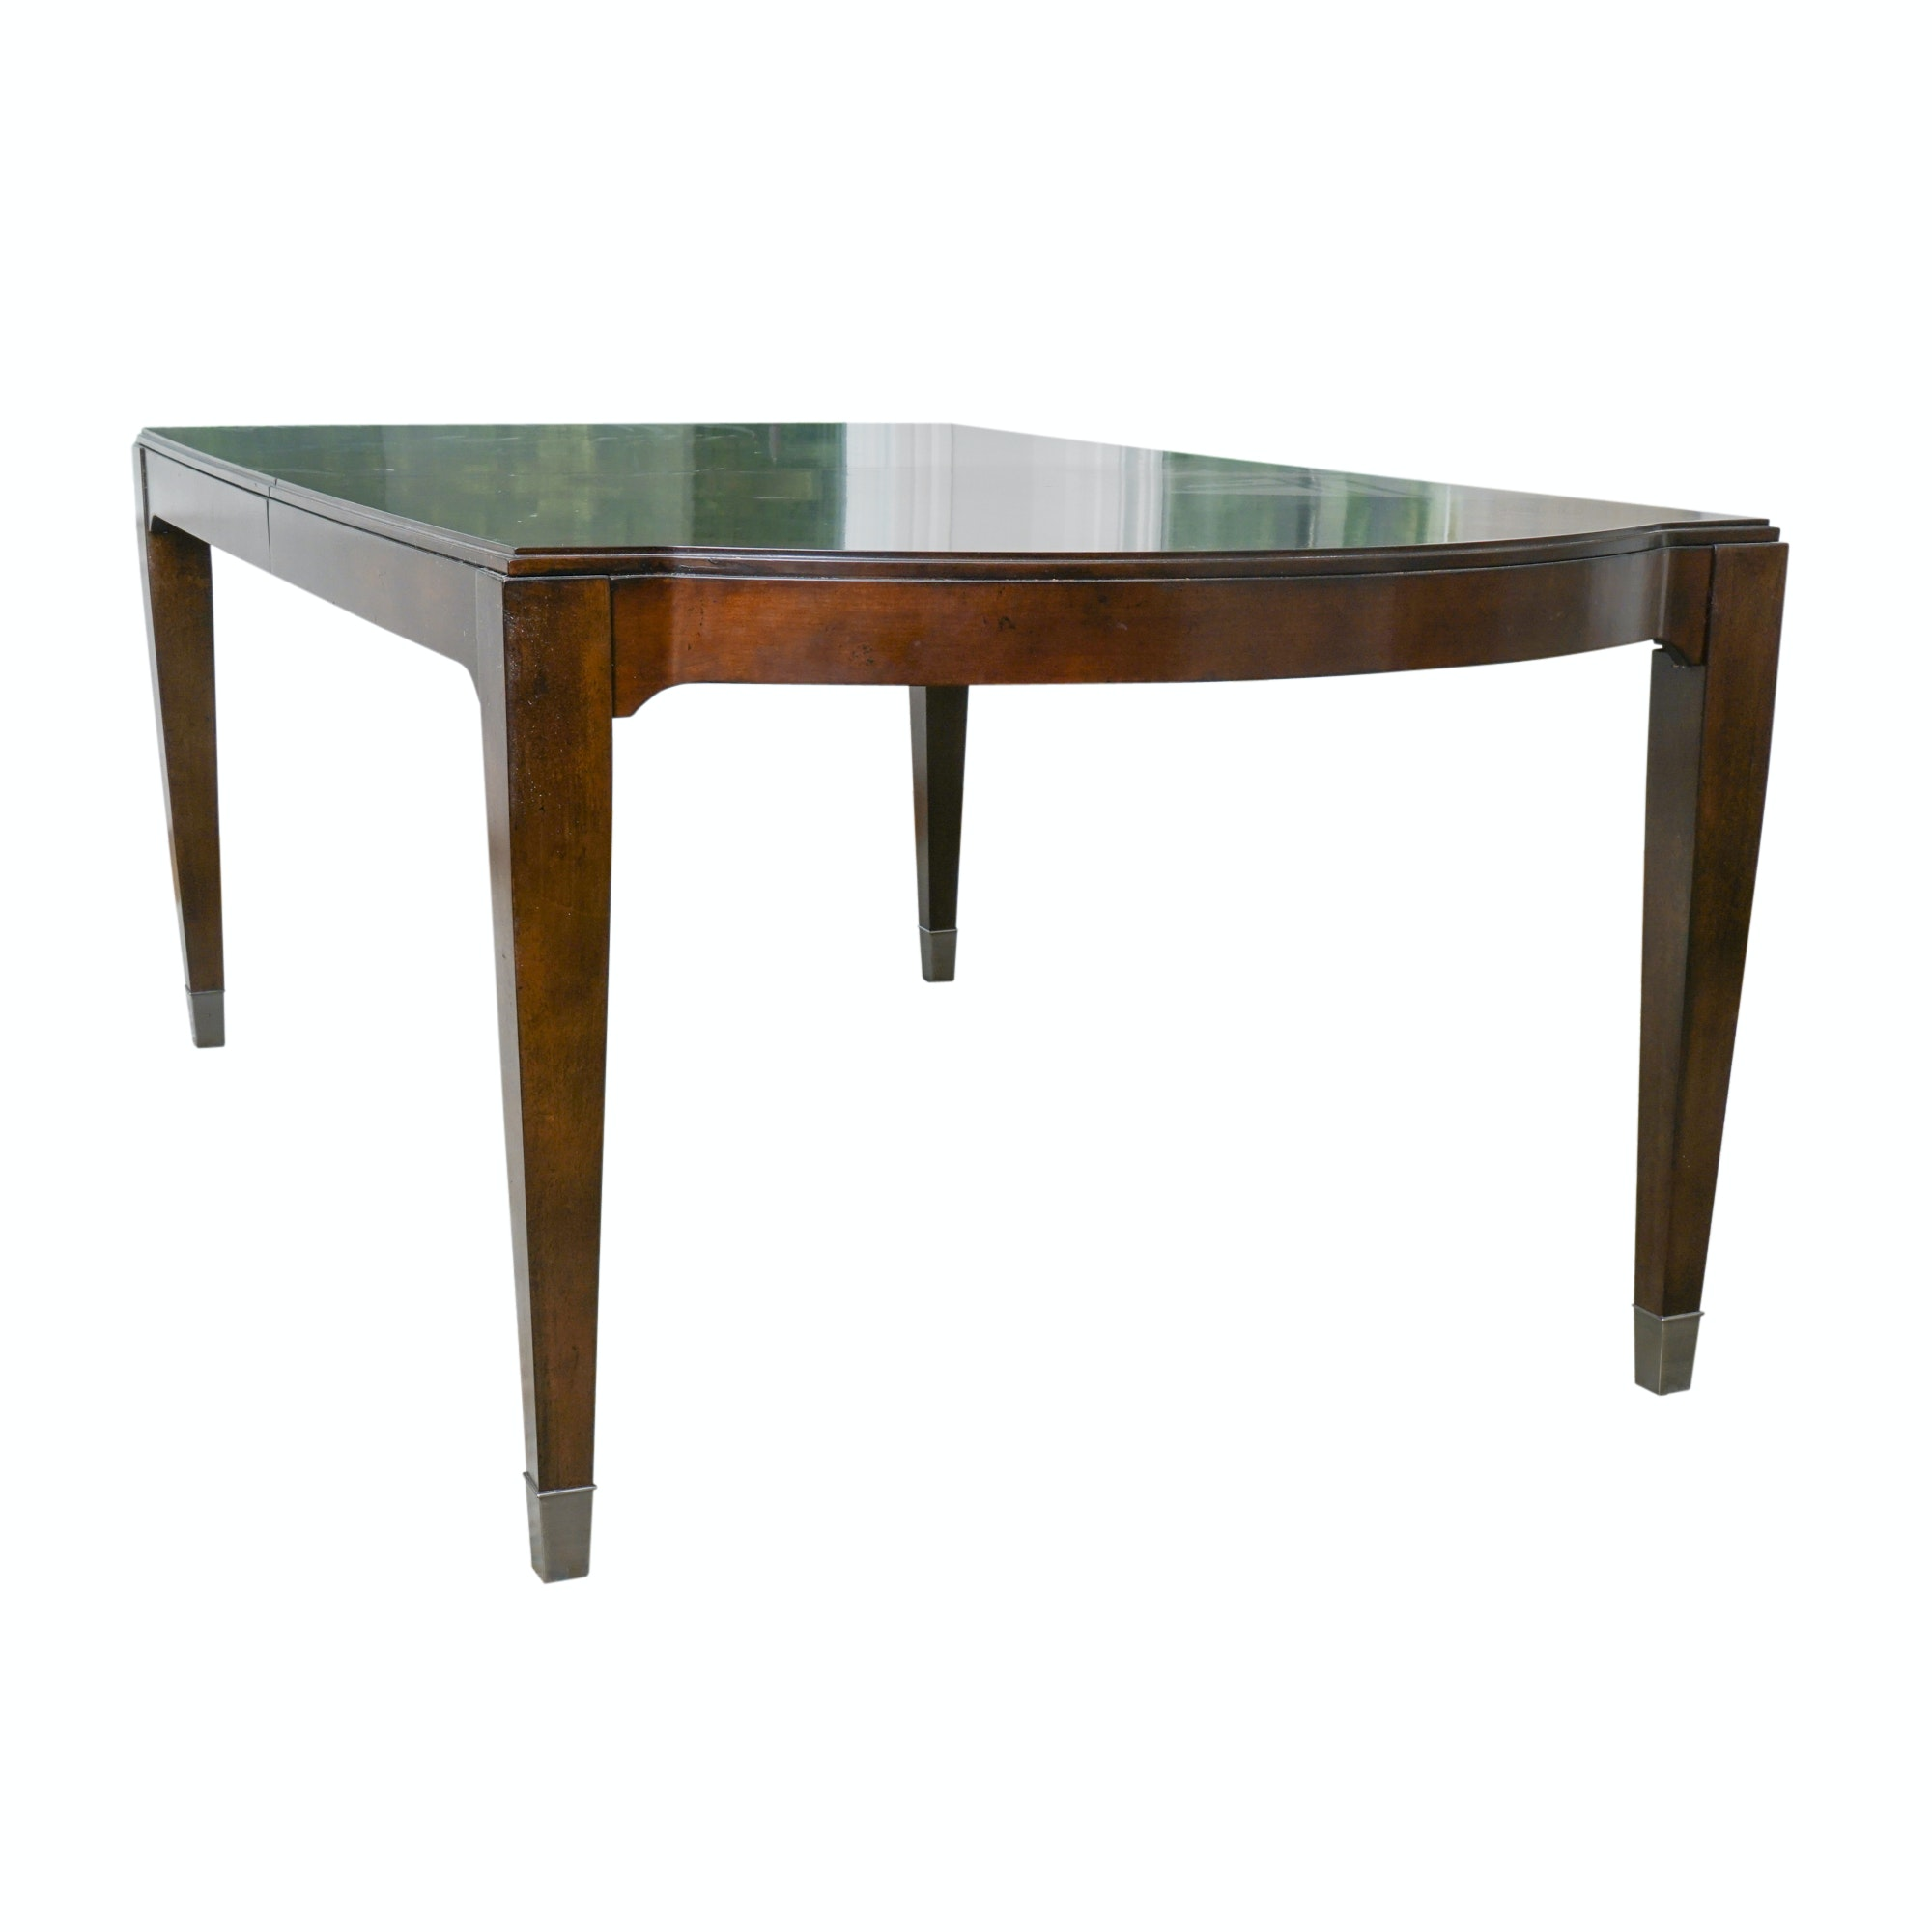 Contemporary Walnut Extension Dining Table by Bassett Furniture